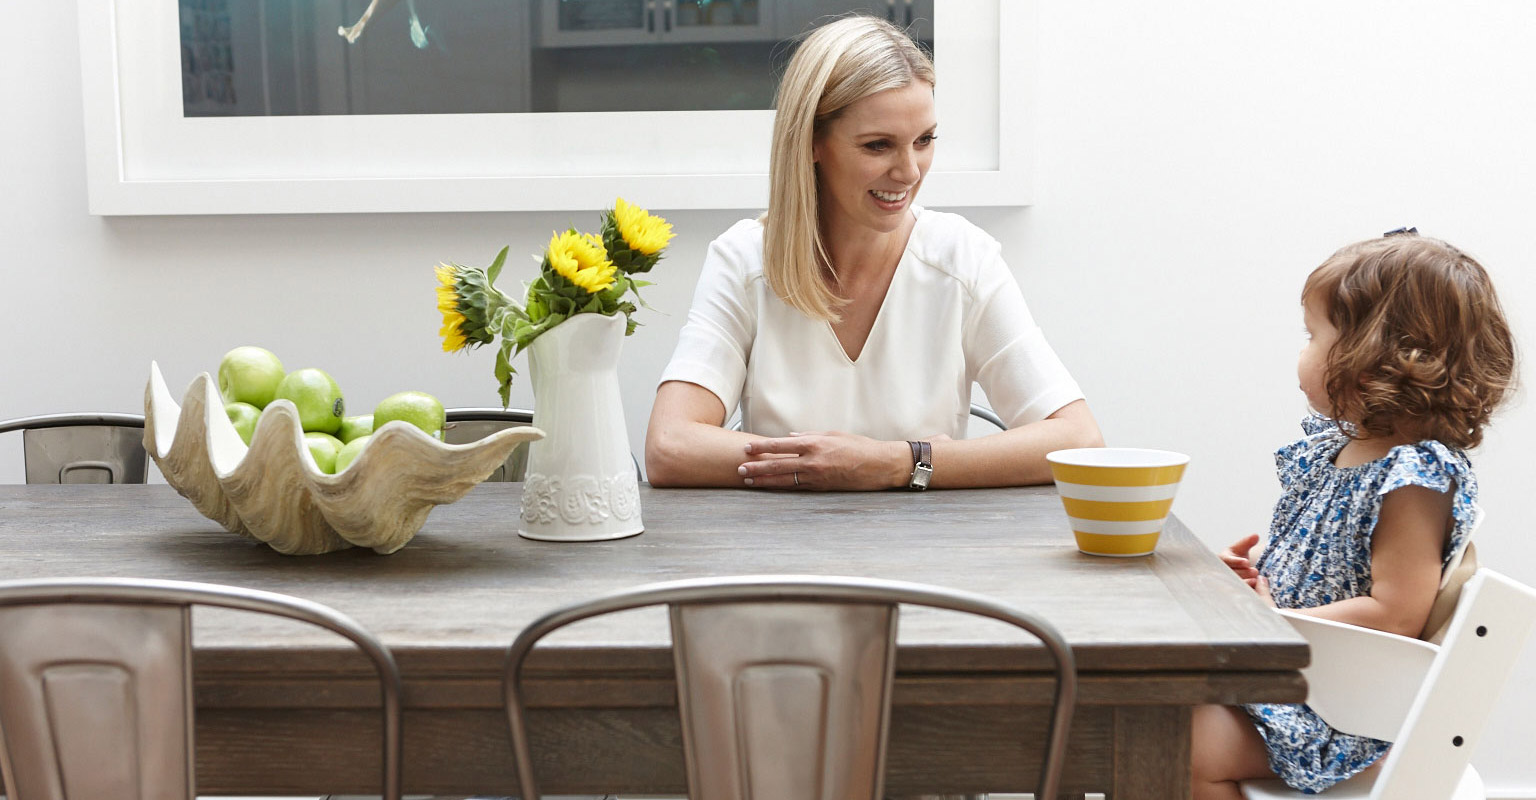 Working From Home: How To Organise, De-Clutter And Keep Things Chic